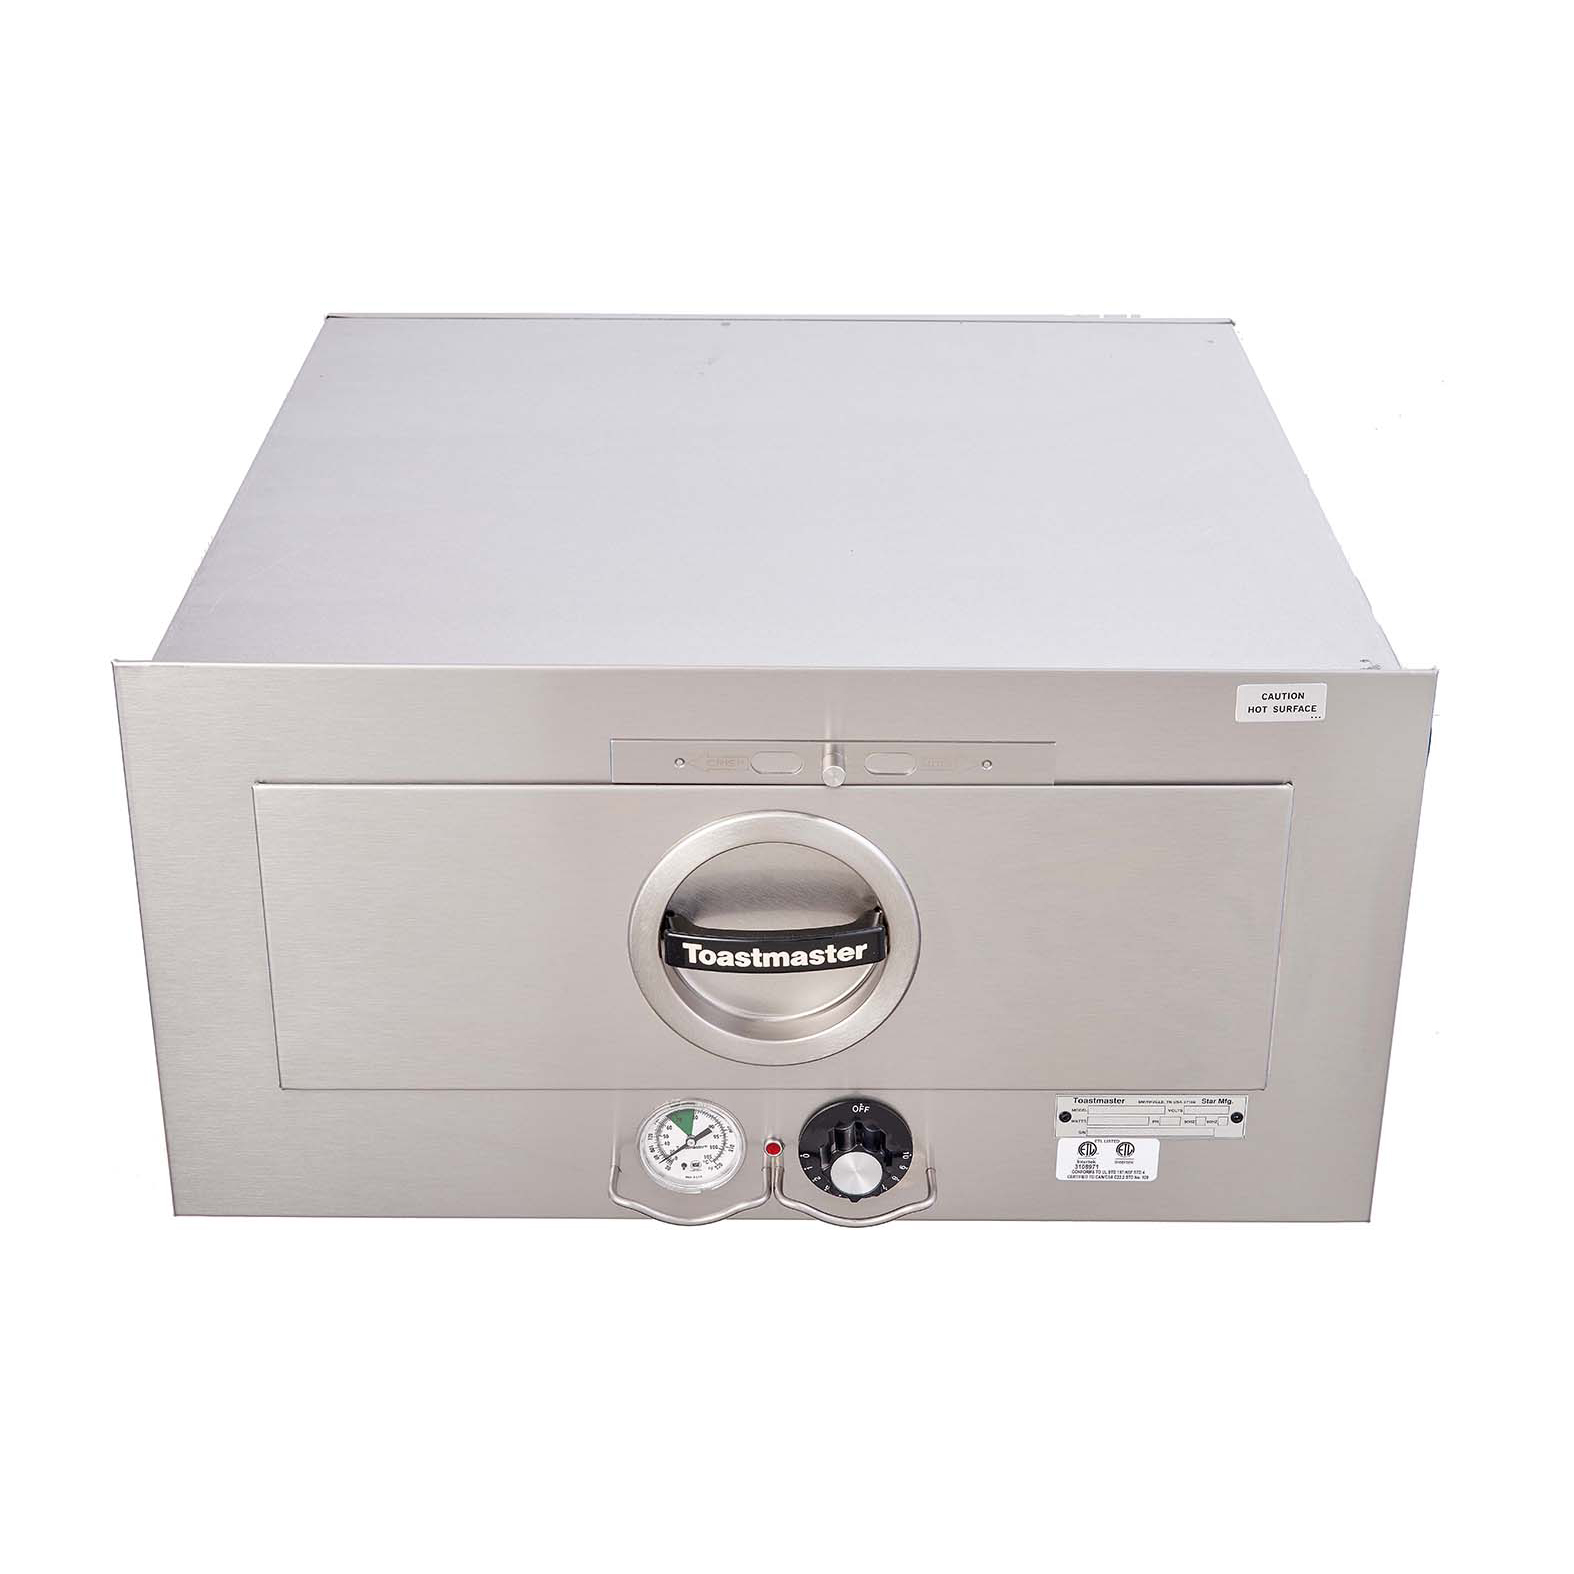 Toastmaster 3A80AT72 warming drawer, built-in